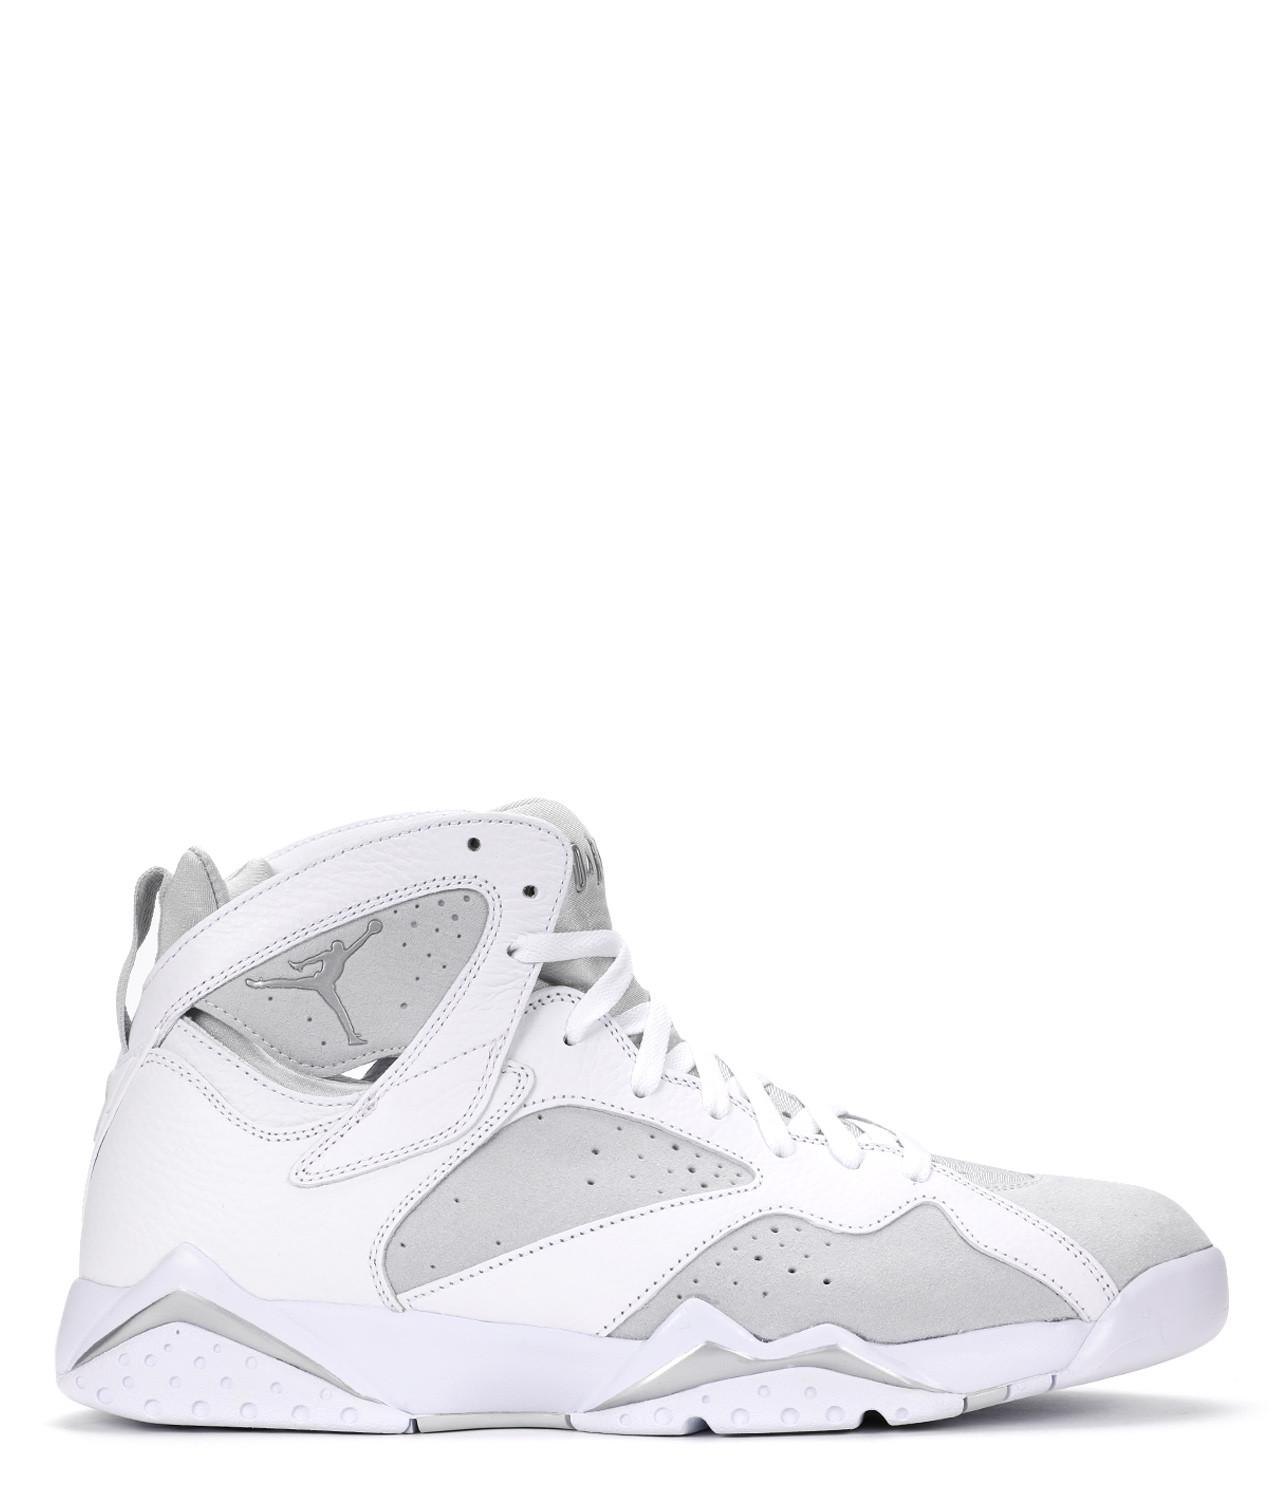 4e2f4c5d8fca10 Lyst - Nike Air Jordan Retro 7 in White